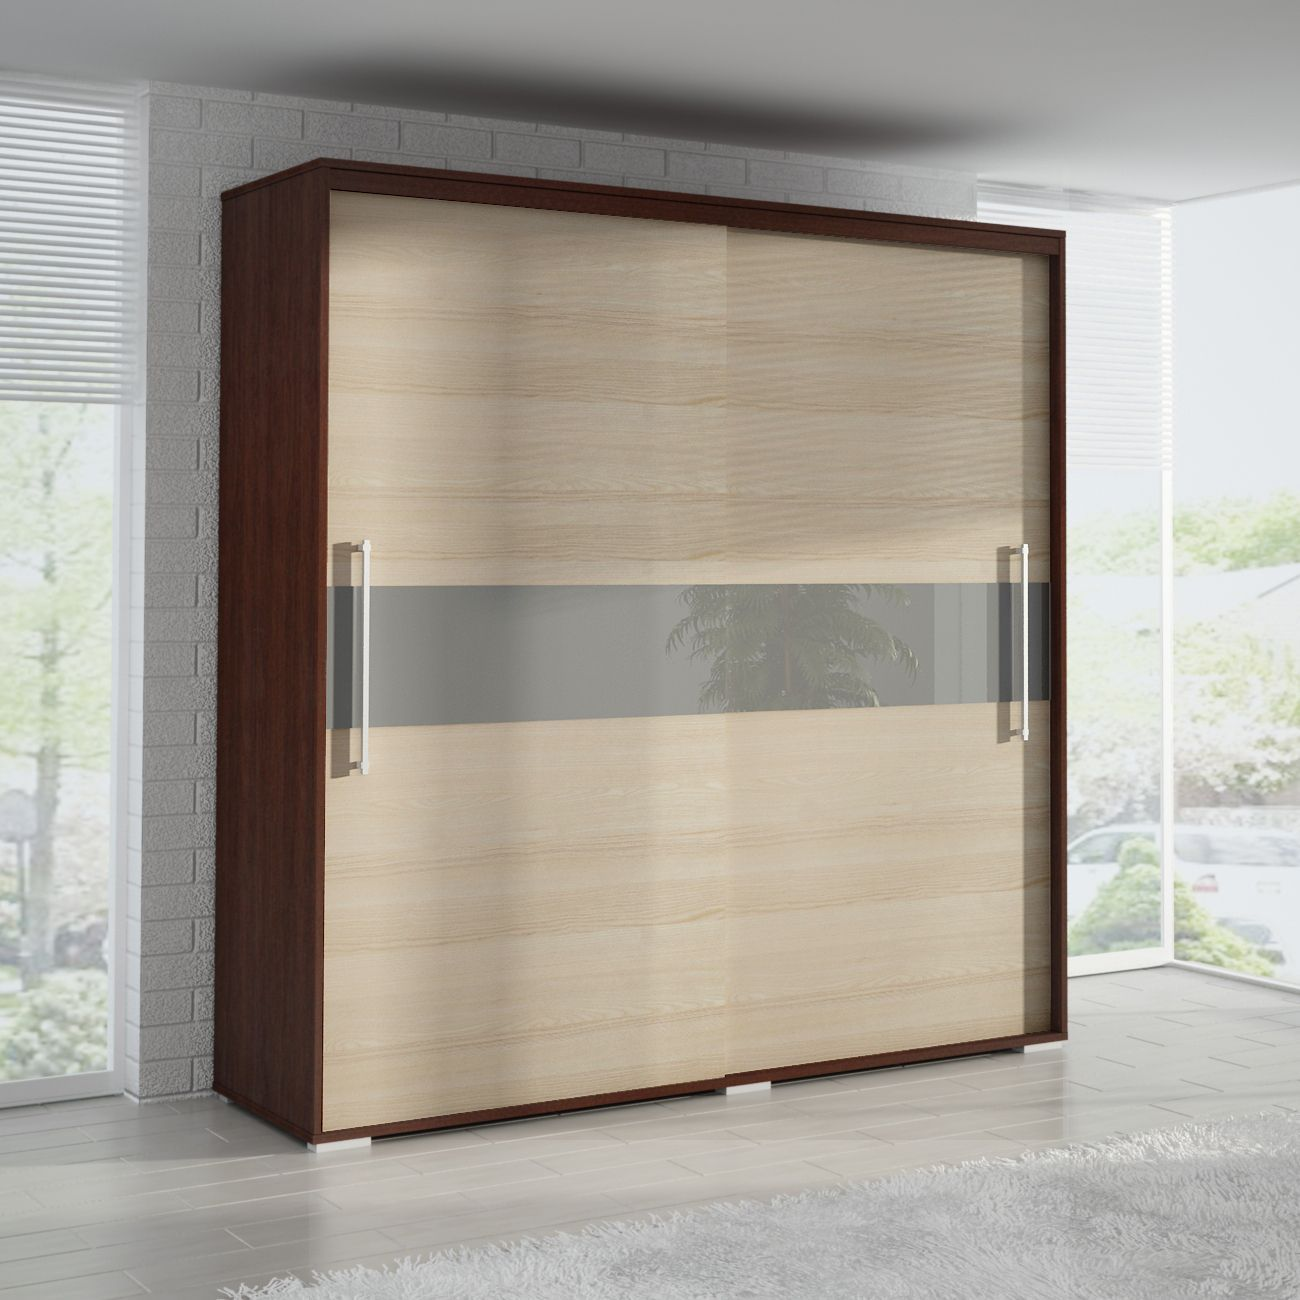 Wardrobe Closet Sliding Door | Calegion